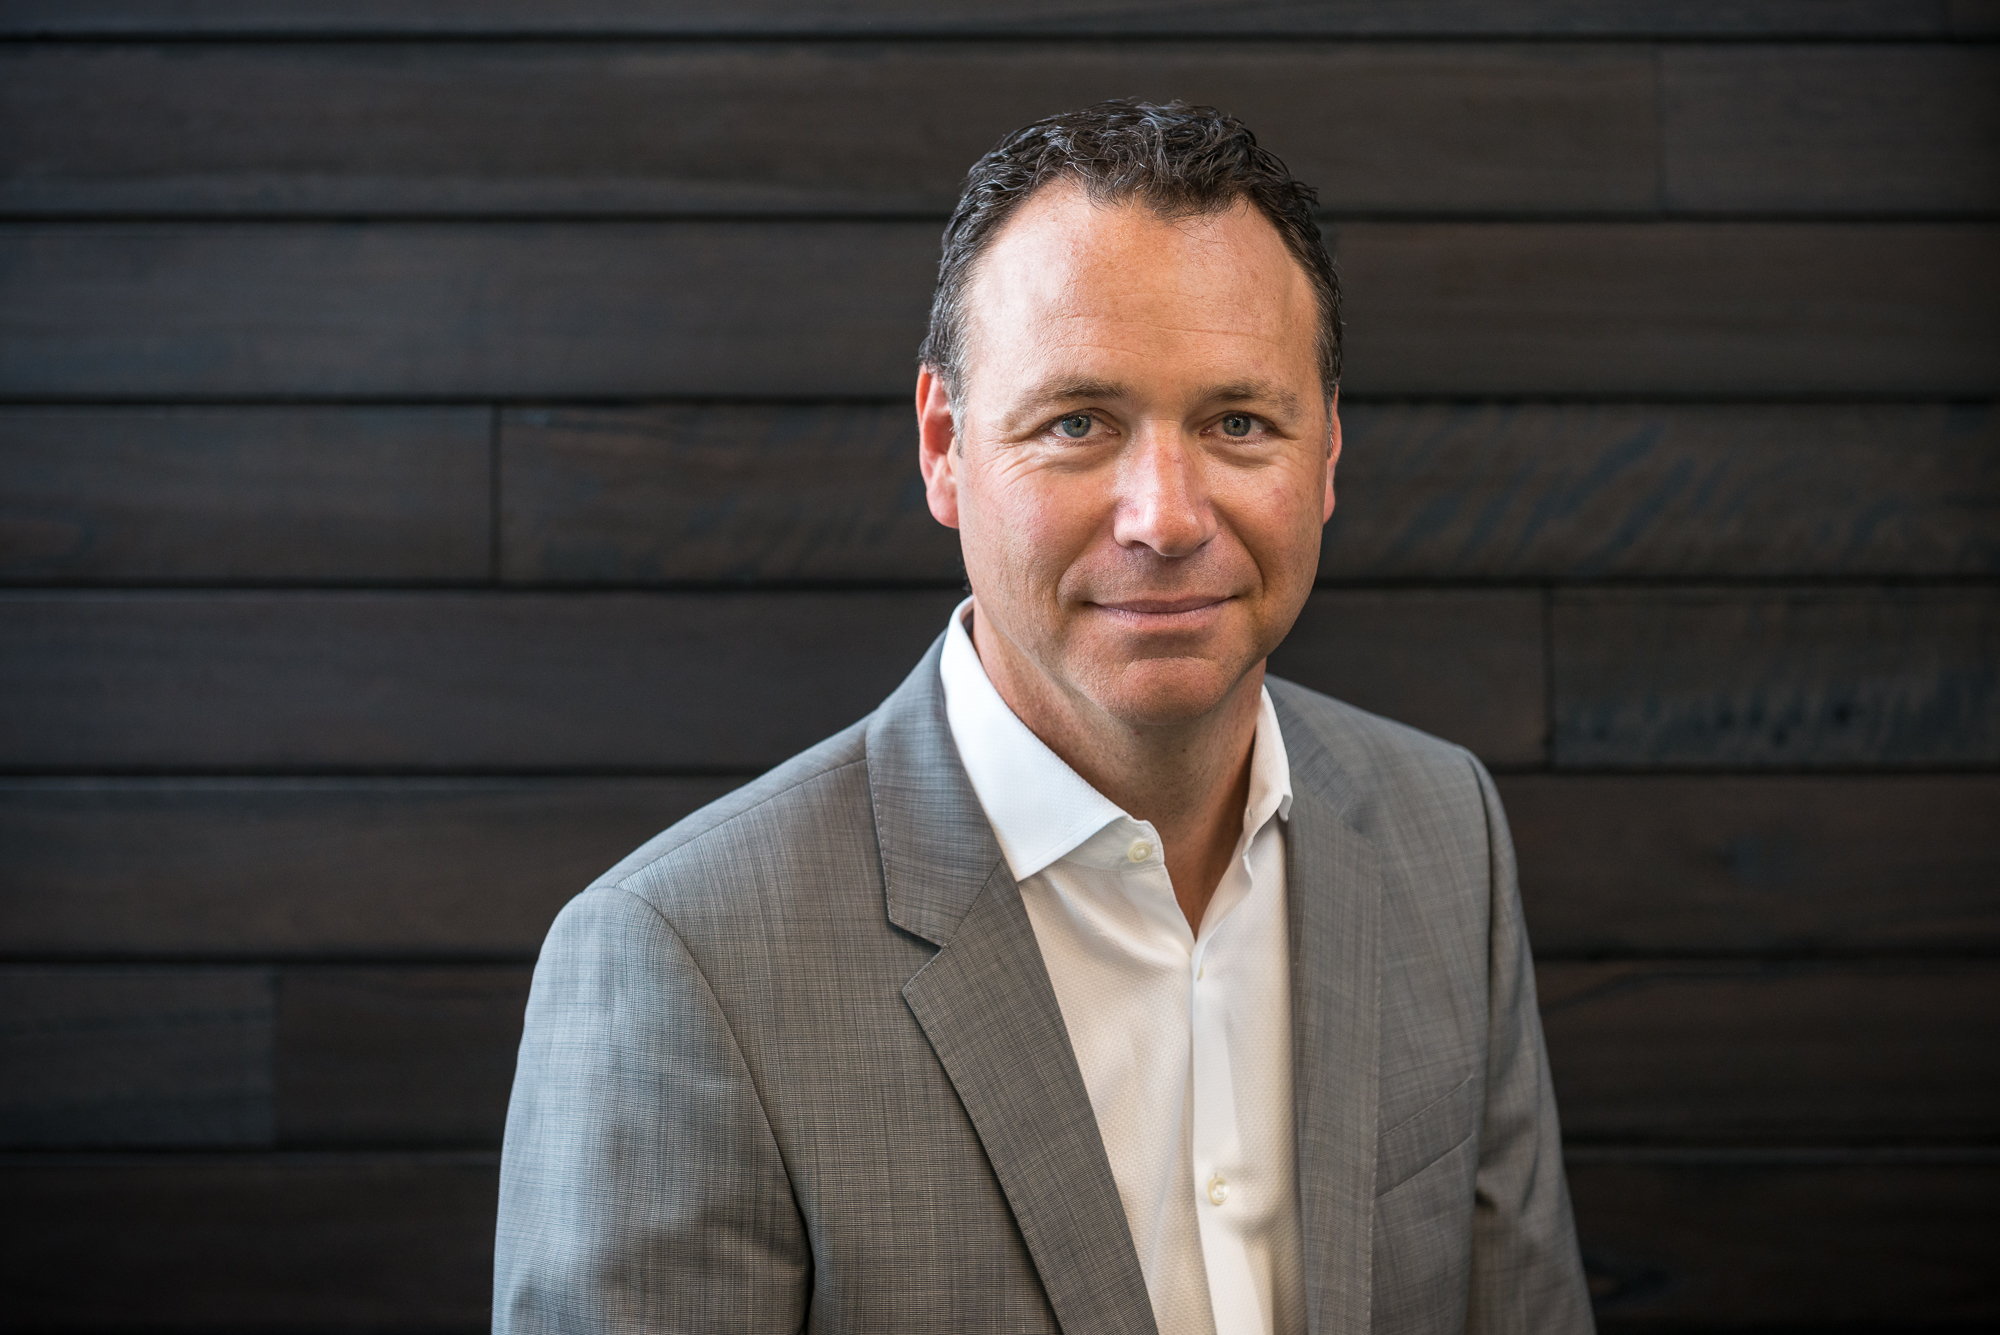 Meet a CEO: Trent Innes from XERO